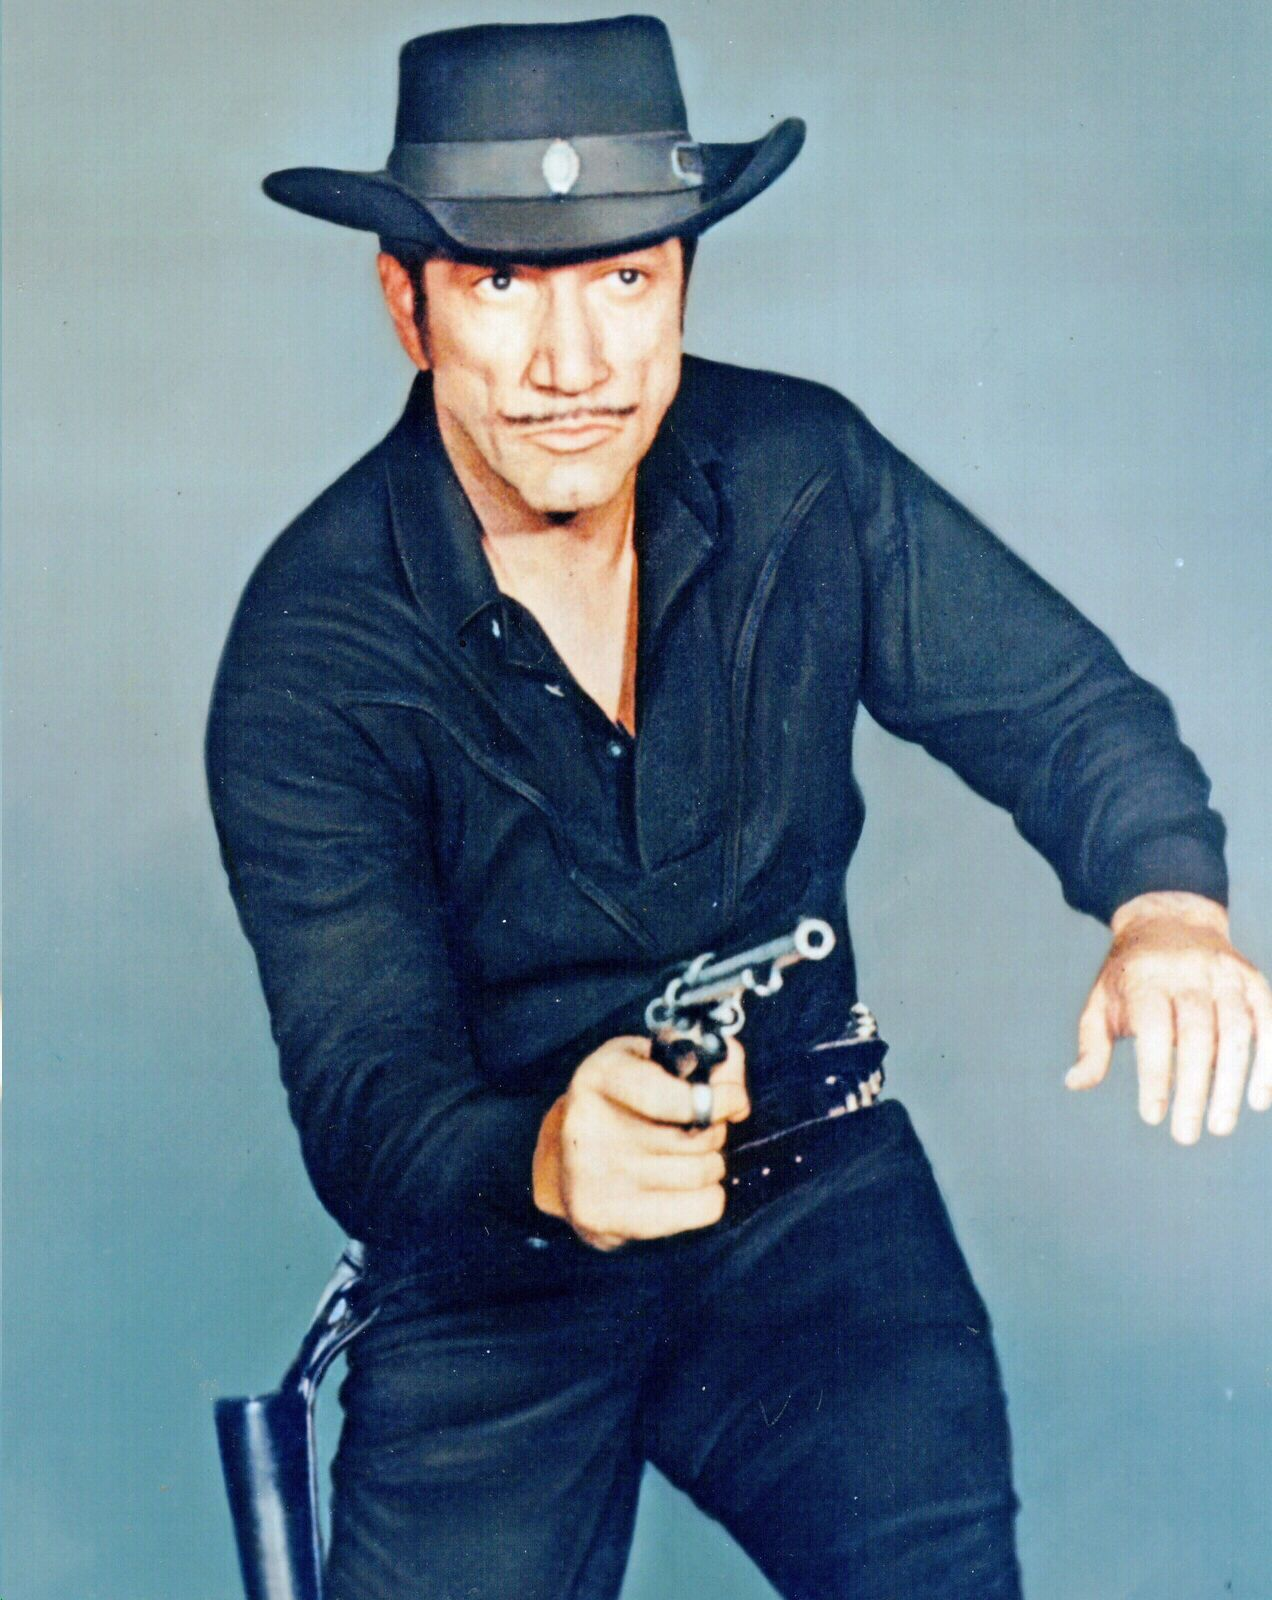 richard boone deathrichard boone pultz, richard boone singer, richard boone, richard boone actor, richard boone smaug, richard boone death, richard boone bio, richard boone net worth, richard boone imdb, richard boone show, richard boone gay, richard boone net worth at death, richard boone paladin theme song, richard boone movies list, richard boone western movies, richard boone gravesite, richard boone nsf, richard boone jazz